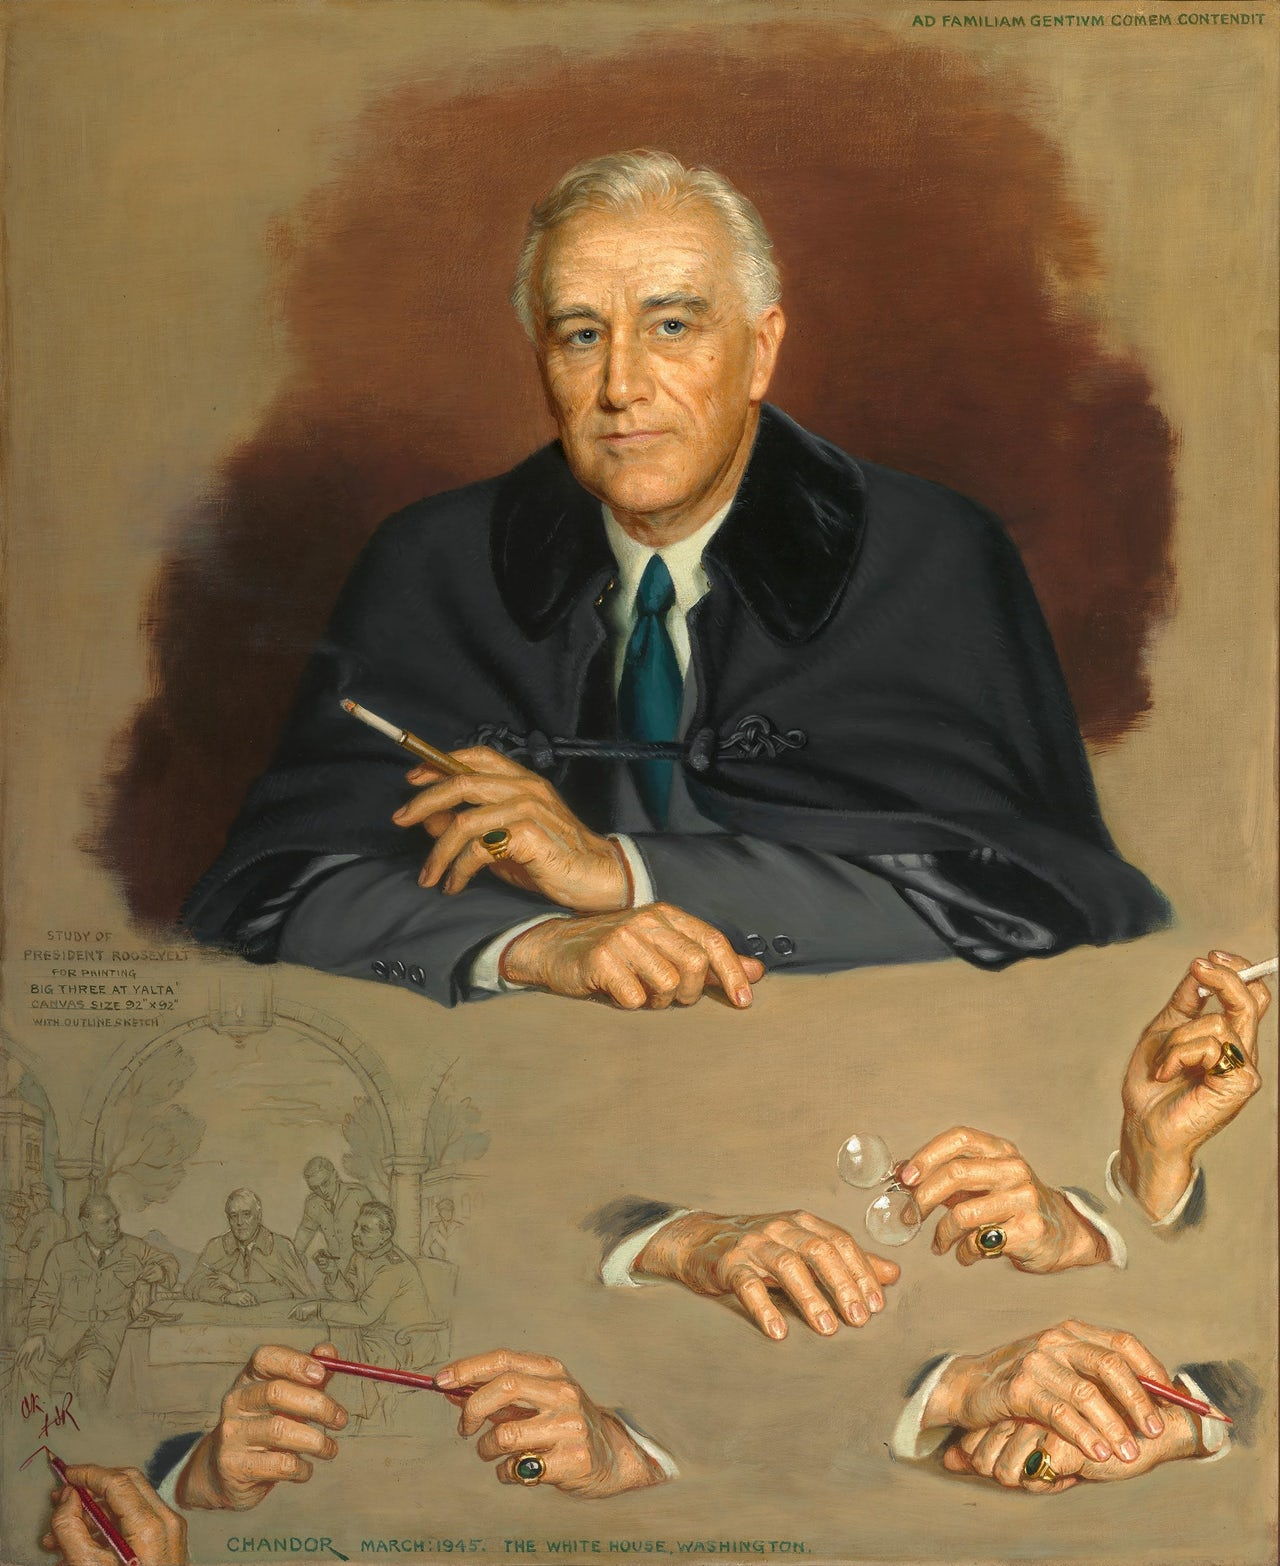 The portrait of FDR that is hanging in the Portrait Gallery's hall of presidents.